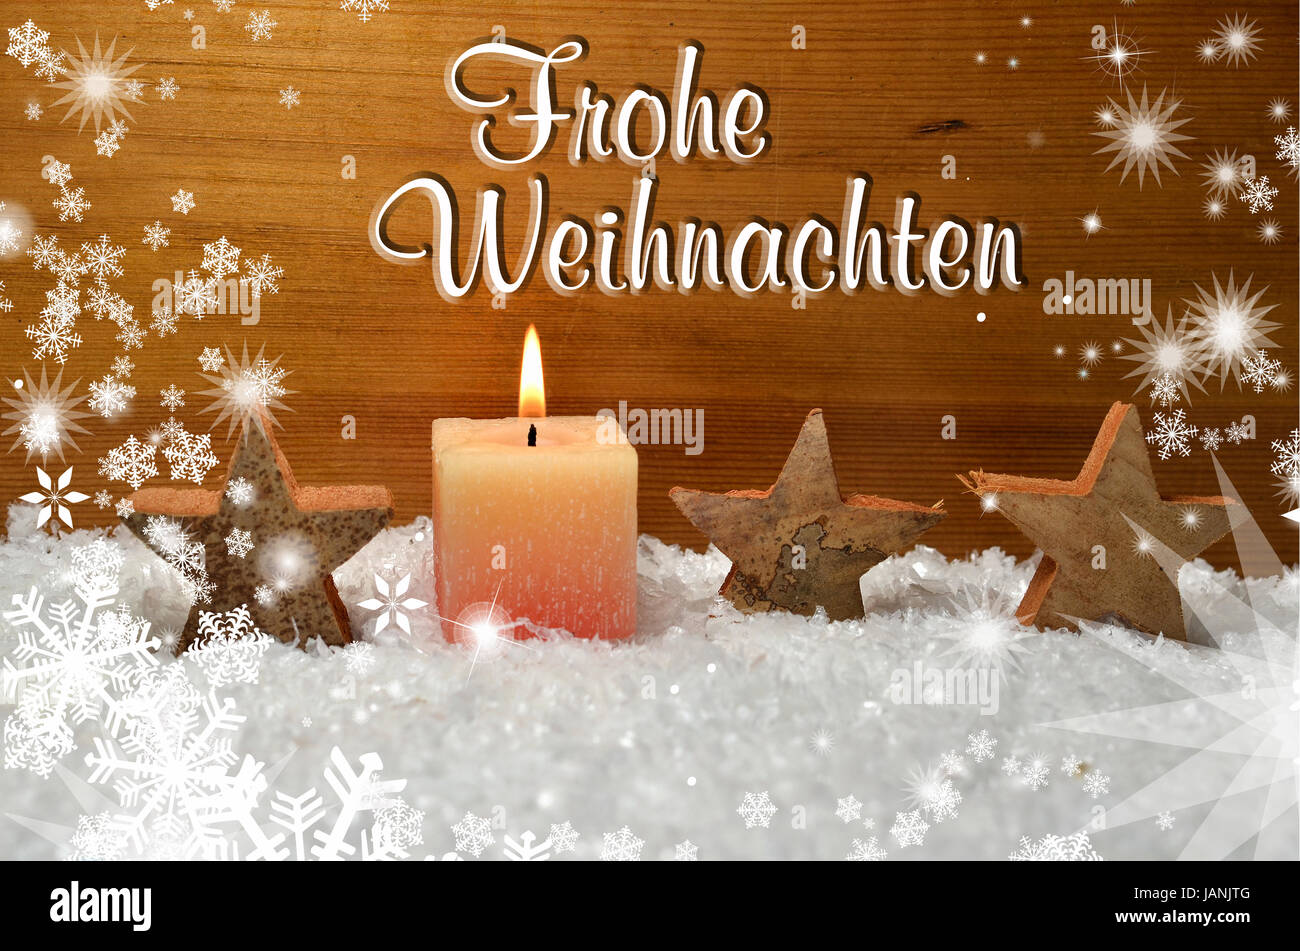 Frohe weihnachten dekoration advent stock photo 144305296 alamy - Dekoration advent ...